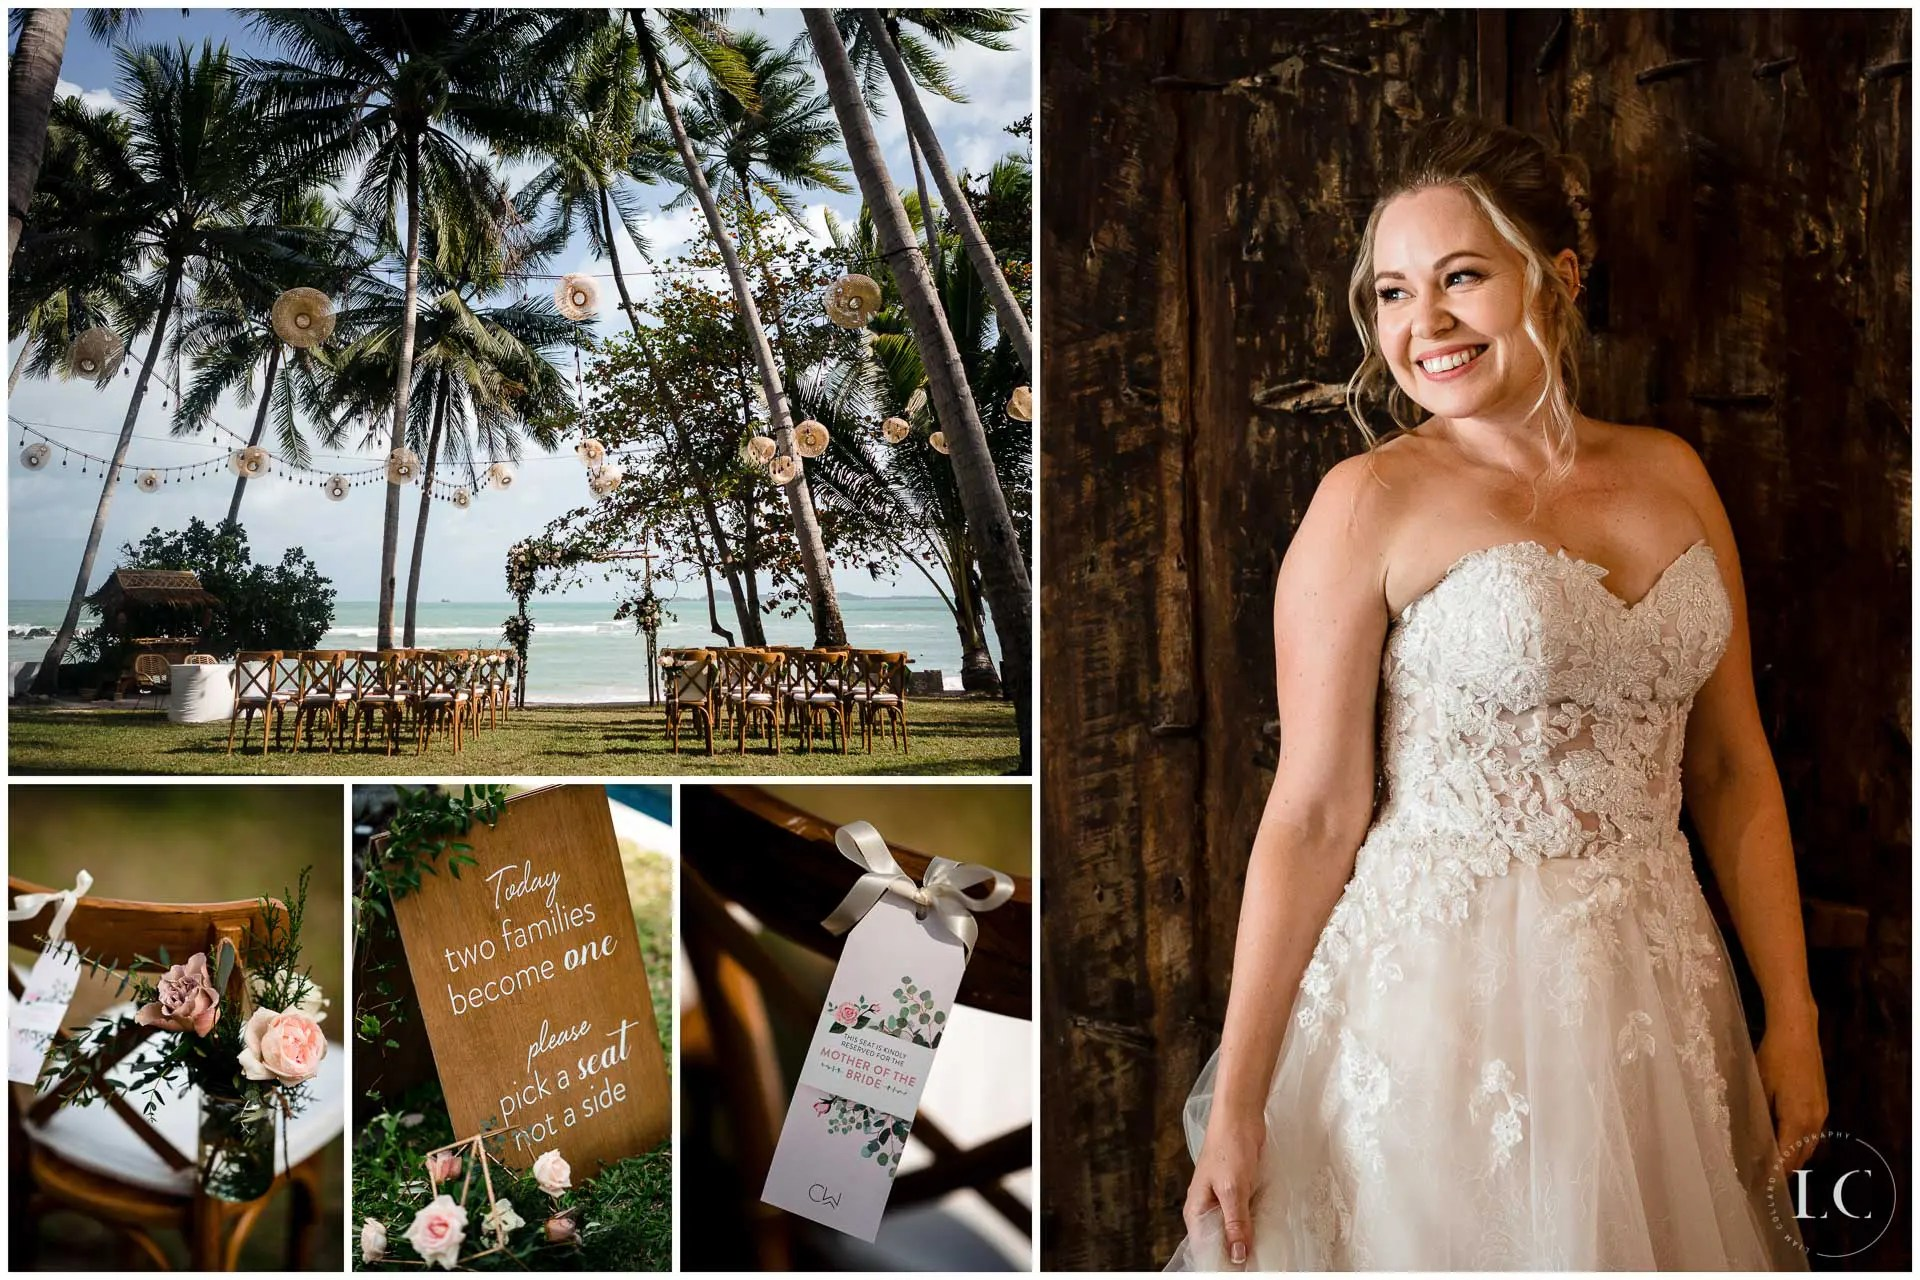 Collage of bride and wedding